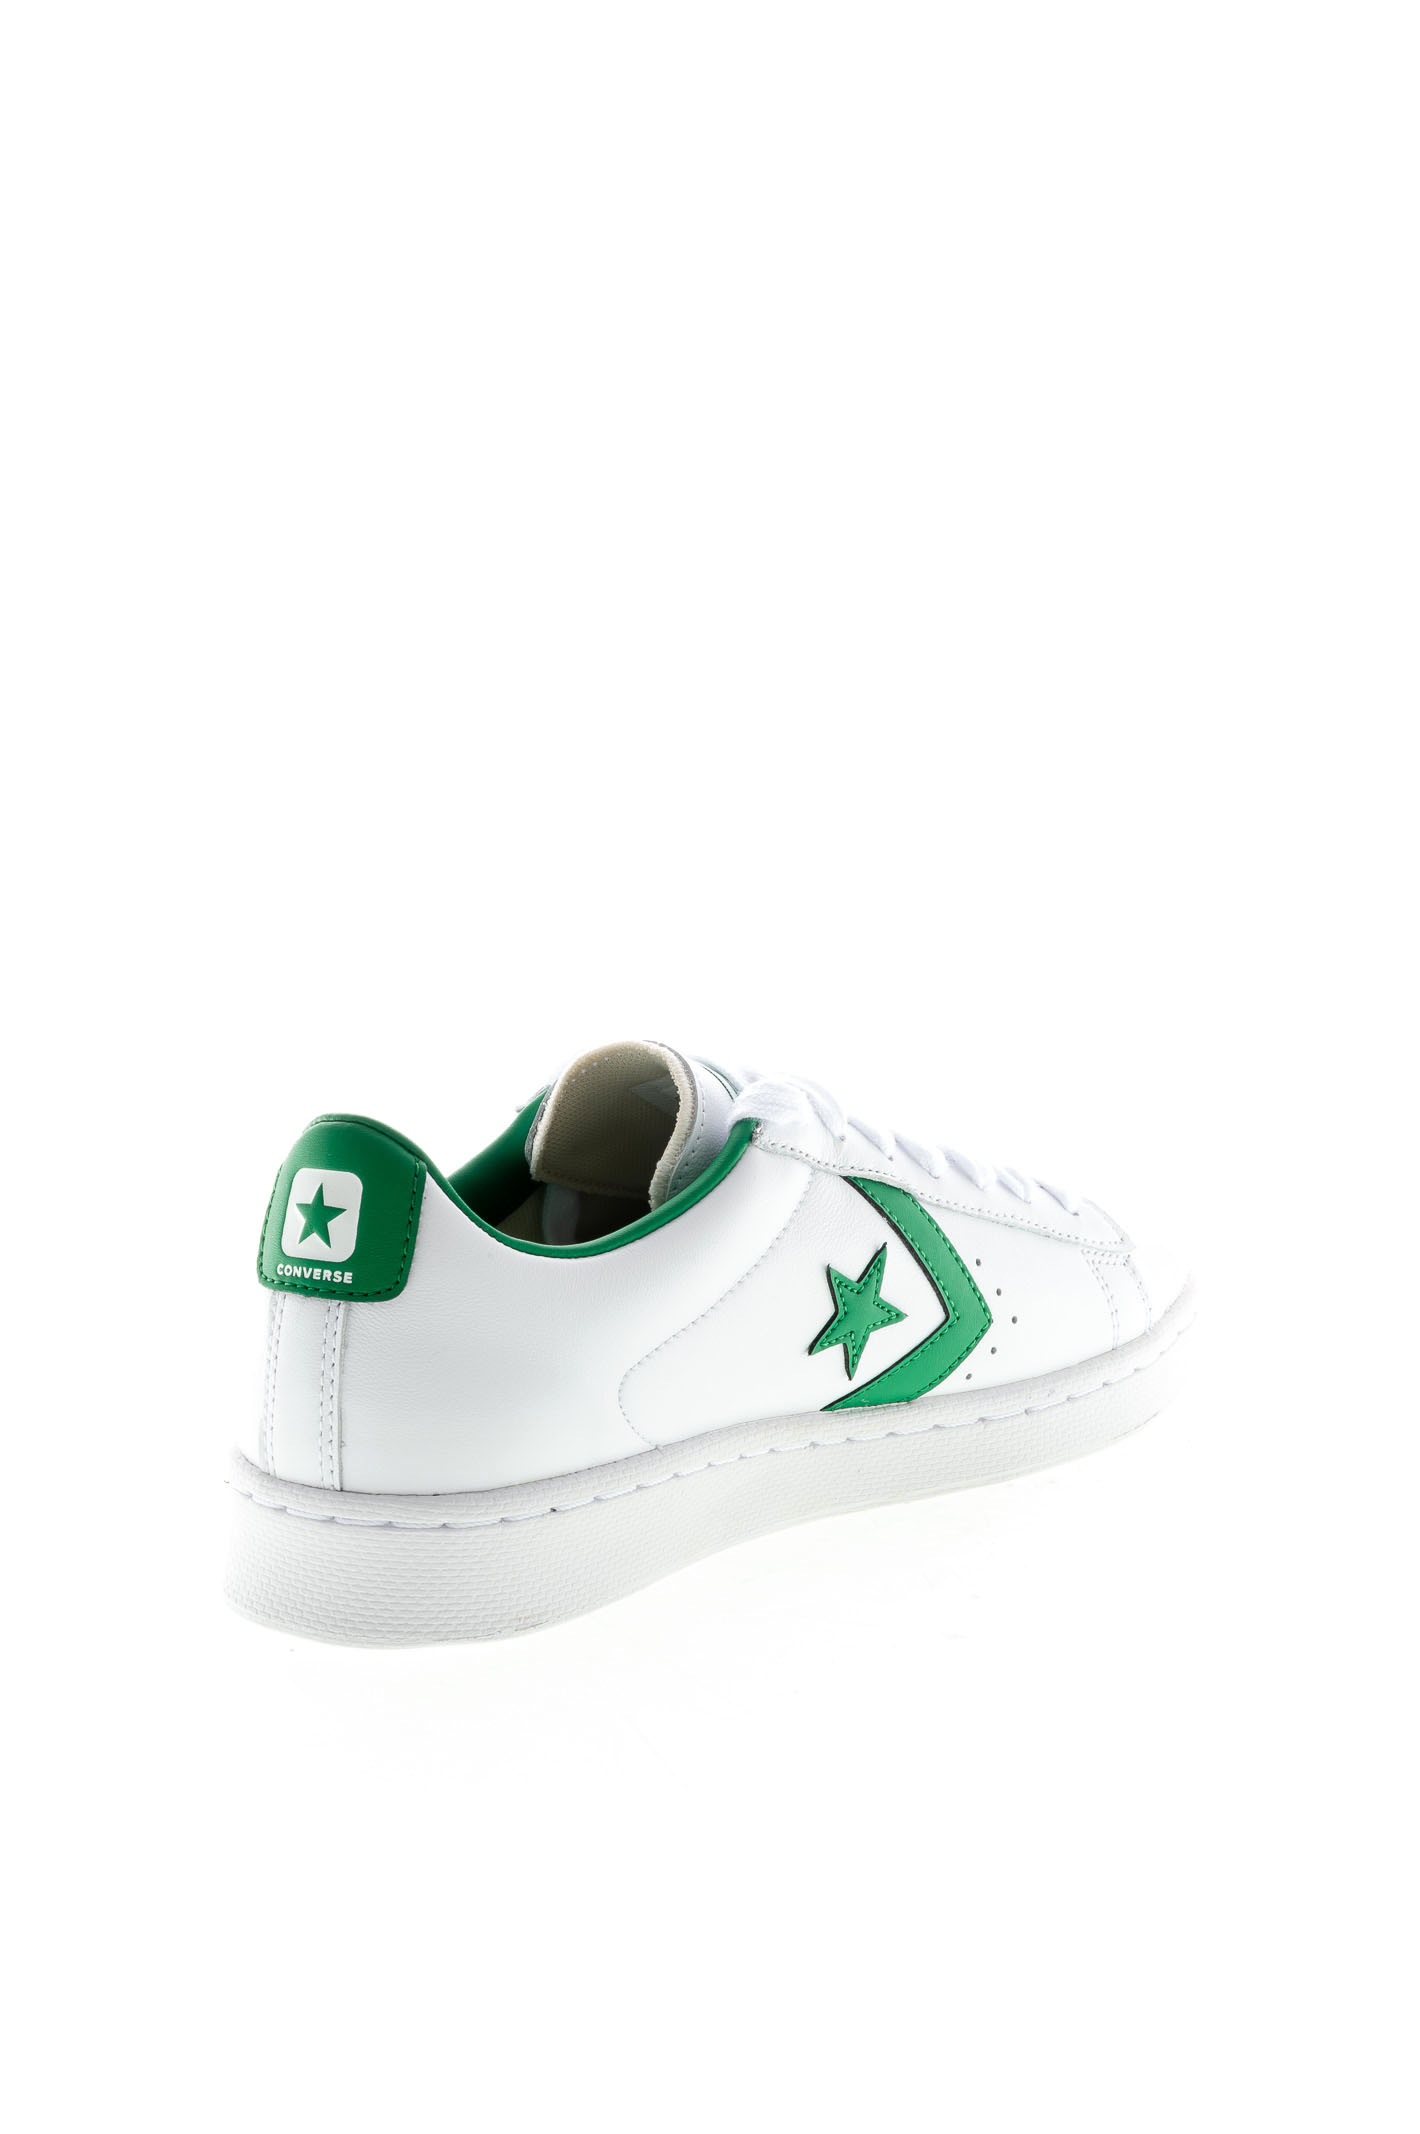 167971CPRO LEATHER-WHT/GREEN